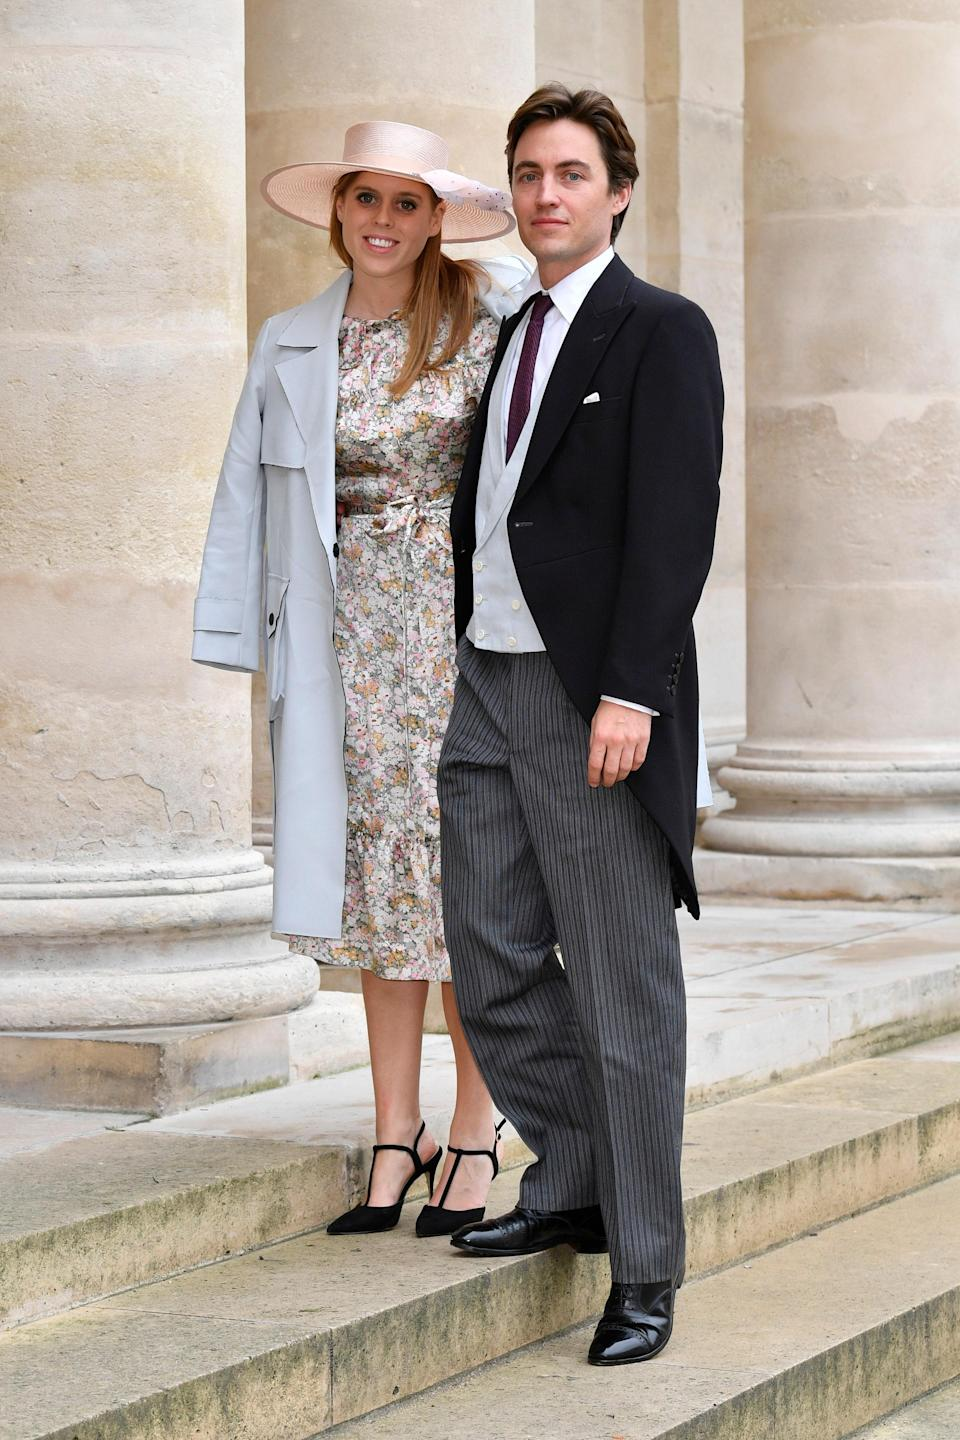 """<p>Surprise! <a href=""""https://www.glamour.com/about/princess-beatrice?mbid=synd_yahoo_rss"""" rel=""""nofollow noopener"""" target=""""_blank"""" data-ylk=""""slk:Princess Beatrice"""" class=""""link rapid-noclick-resp"""">Princess Beatrice</a> married Edoardo Mapelli Mozzi in a <a href=""""https://www.glamour.com/story/princess-beatrice-married-edoardo-mapelli-mozzi-in-a-secret-wedding-at-windsor-castle?mbid=synd_yahoo_rss"""" rel=""""nofollow noopener"""" target=""""_blank"""" data-ylk=""""slk:secret wedding"""" class=""""link rapid-noclick-resp"""">secret wedding</a> at Windsor Castle, Buckingham Palace confirmed. </p> <p>""""The private wedding ceremony of Princess Beatrice and Mr. Edoardo Mapelli Mozzi took place at 11am on Friday 17th July at The Royal Chapel of All Saints at Royal Lodge, Windsor,"""" the statement <a href=""""https://twitter.com/byQueenVic/status/1284094561229438977?s=20"""" rel=""""nofollow noopener"""" target=""""_blank"""" data-ylk=""""slk:read"""" class=""""link rapid-noclick-resp"""">read</a>. """"The small ceremony was attended by The Queen, The Duke of Edinburgh, and close family. The wedding took place in accordance with all relevant Government Guidelines.""""</p> <p>Not only did the princess wear Queen Elizabeth II's <a href=""""https://www.glamour.com/story/princess-beatrice-wedding-photos-queen-elizabeth-tiara-wedding-dress-borrowed?mbid=synd_yahoo_rss"""" rel=""""nofollow noopener"""" target=""""_blank"""" data-ylk=""""slk:own wedding tiara"""" class=""""link rapid-noclick-resp"""">own wedding tiara</a>, but she also borrowed <a href=""""https://www.glamour.com/story/princess-beatrice-wedding-photos-queen-elizabeth-tiara-wedding-dress-borrowed?mbid=synd_yahoo_rss"""" rel=""""nofollow noopener"""" target=""""_blank"""" data-ylk=""""slk:a gown"""" class=""""link rapid-noclick-resp"""">a gown</a> from her grandmother. Designed by Norman Hartnell, who also designed the dress Queen Elizabeth wore to her own nuptials, Beatrice's choice of gown for her wedding was reportedly a last-minute decision. After changing her mind from her original choice, the princess reportedly """"made a request [to bo"""